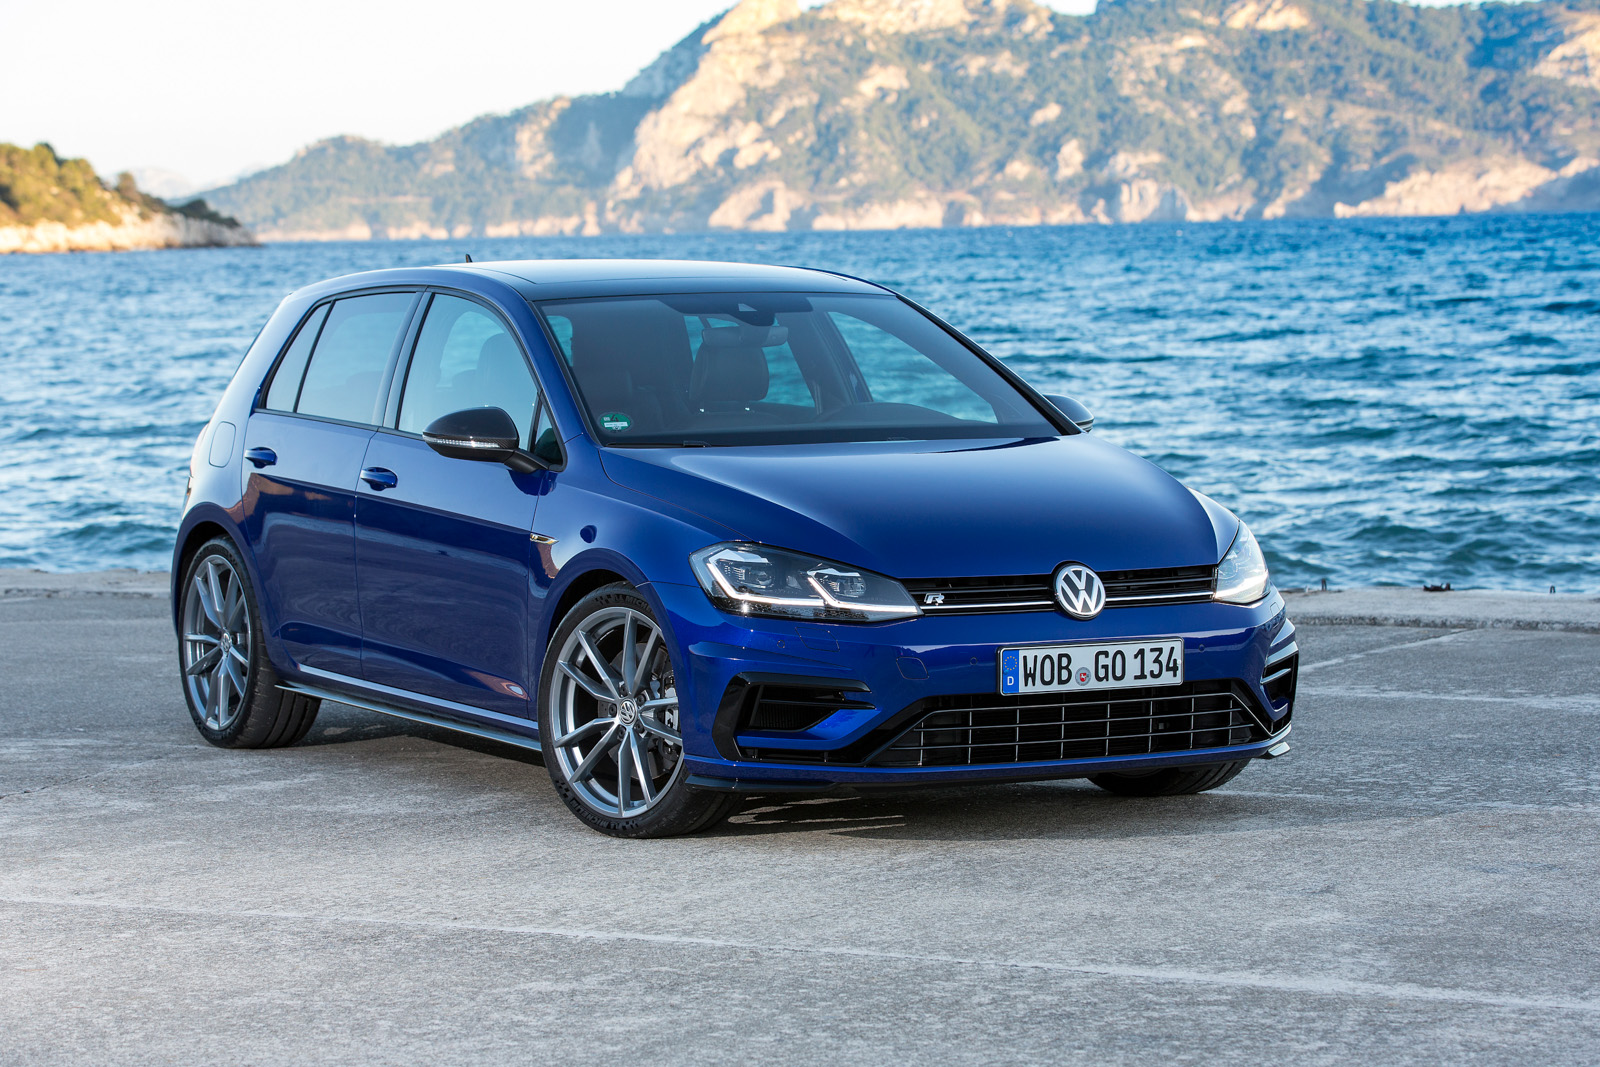 2018 Volkswagen Golf R Gte Gti And E Golf Review Gtspirit